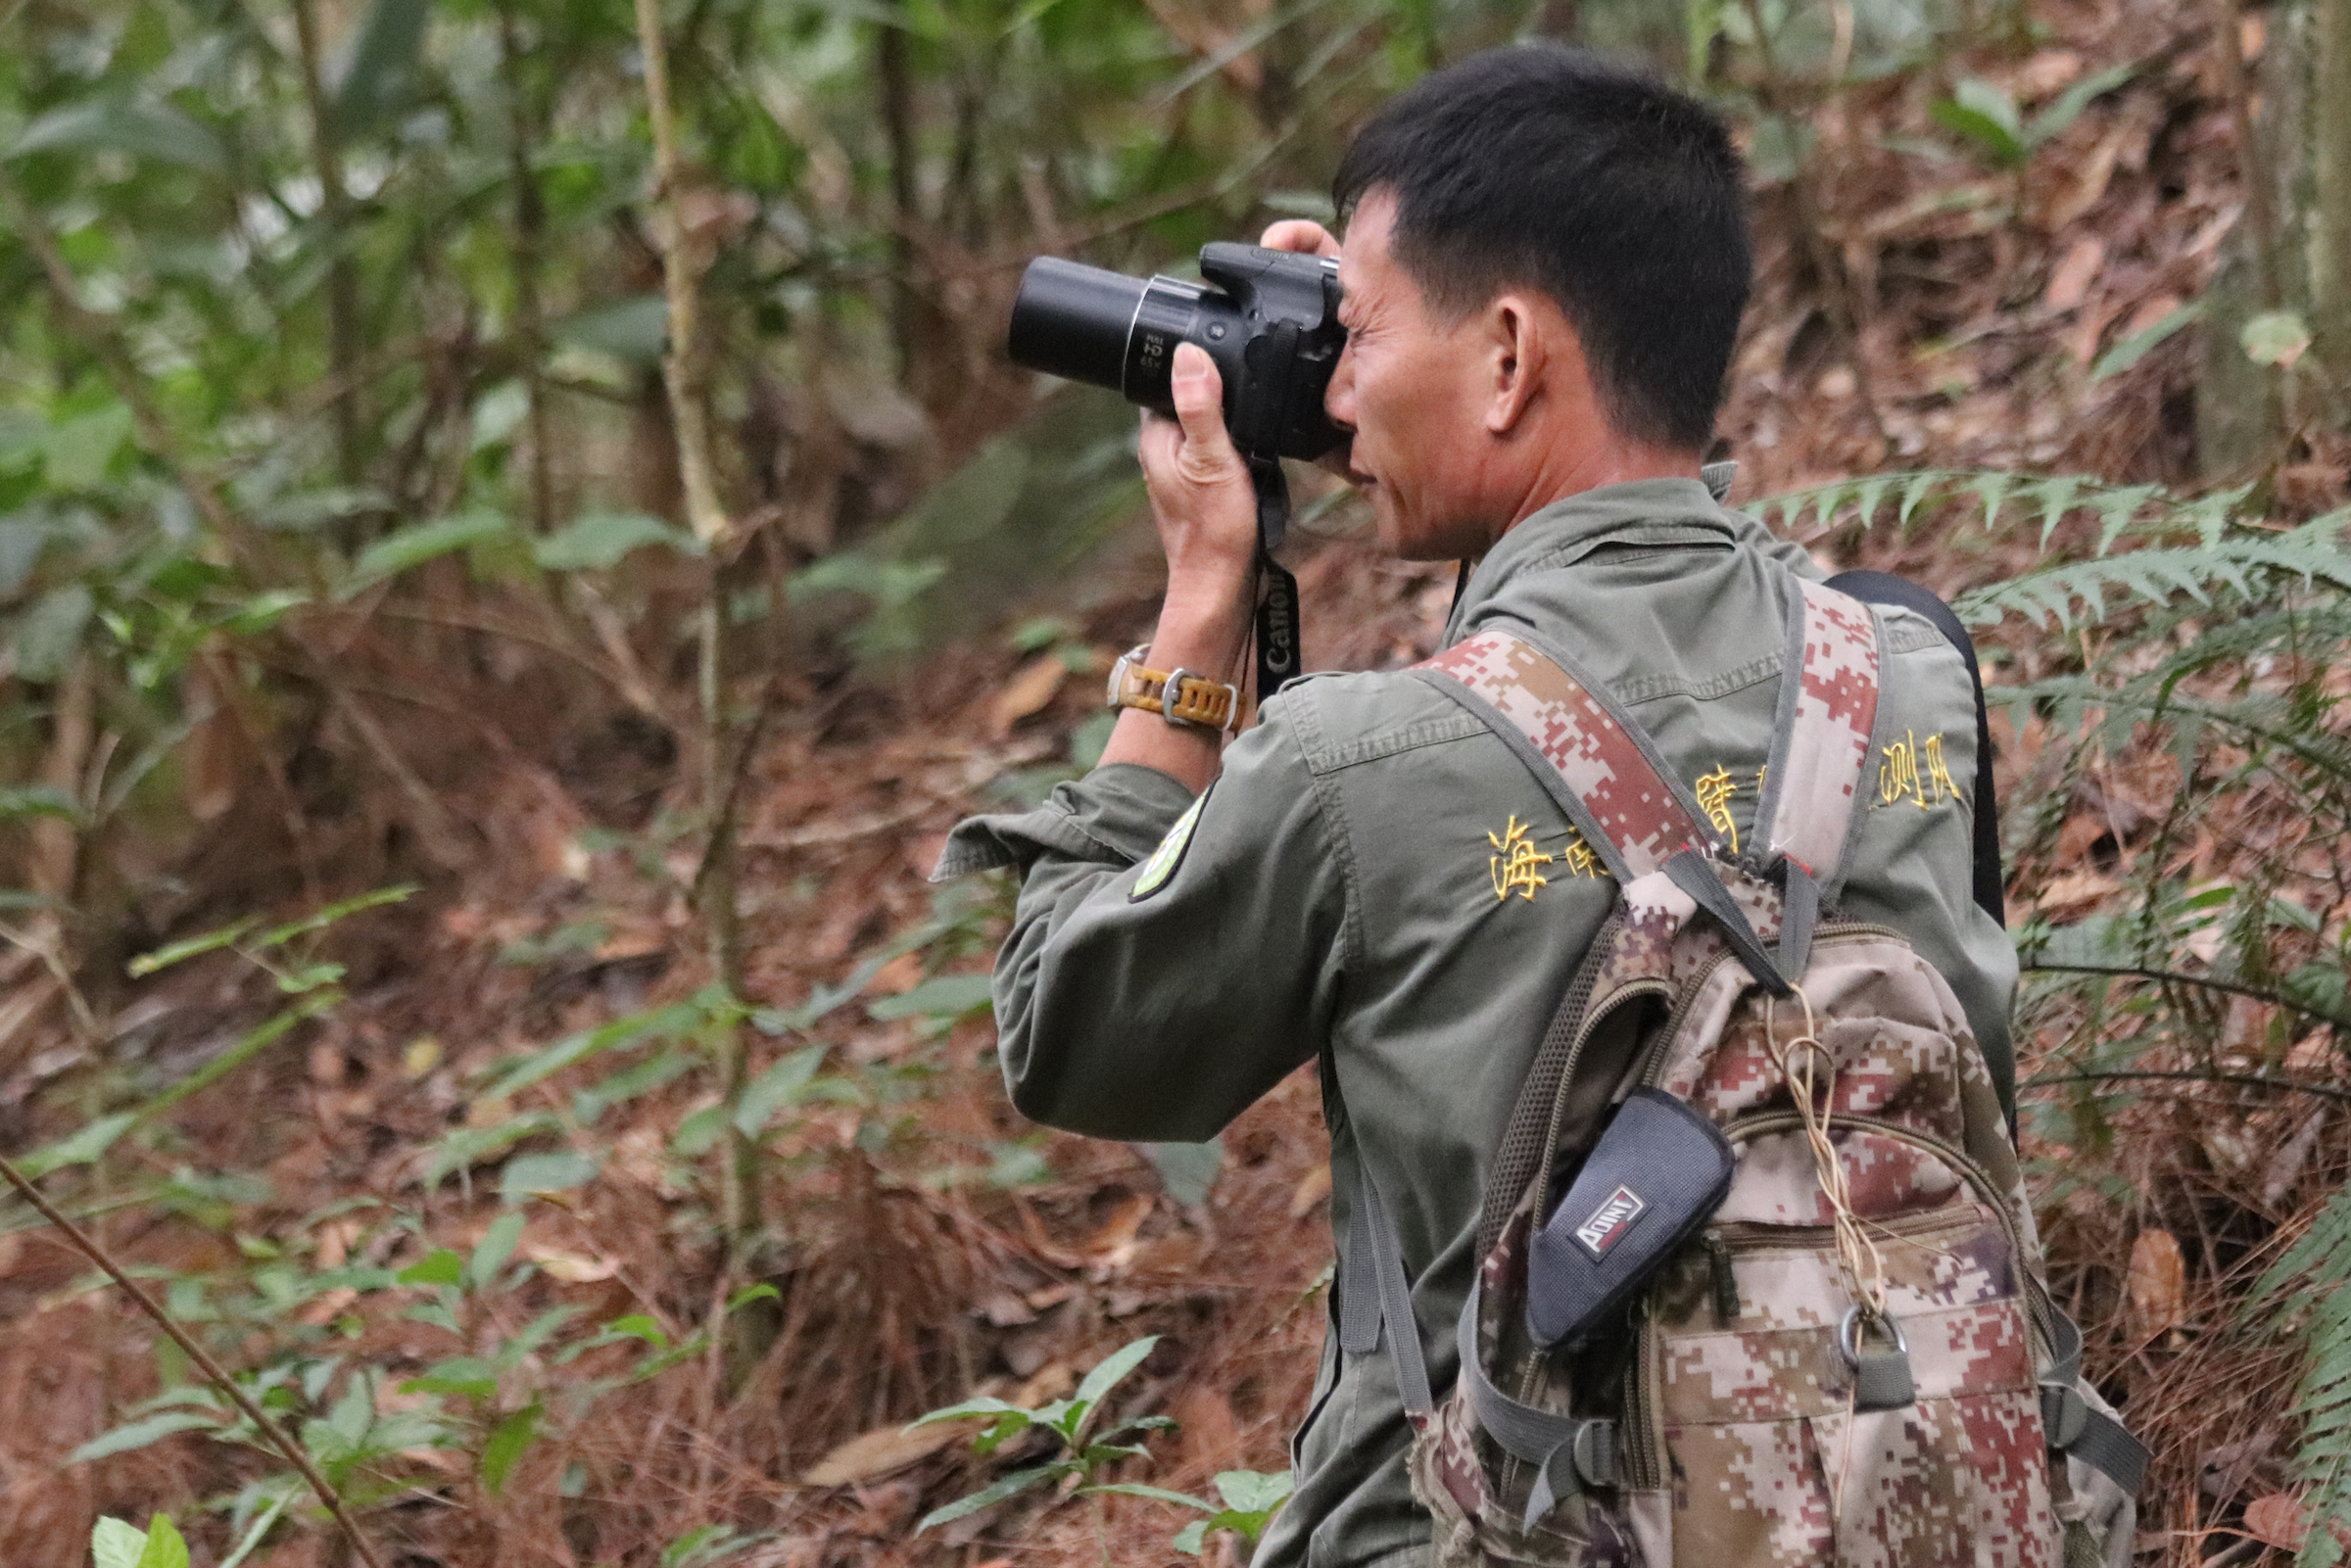 Forest ranger Li Wenyong monitors the tiny population of the Hainan gibbon, the rarest ape in the world. Photograph courtesy of Kadoorie Farm & Botanic Garden